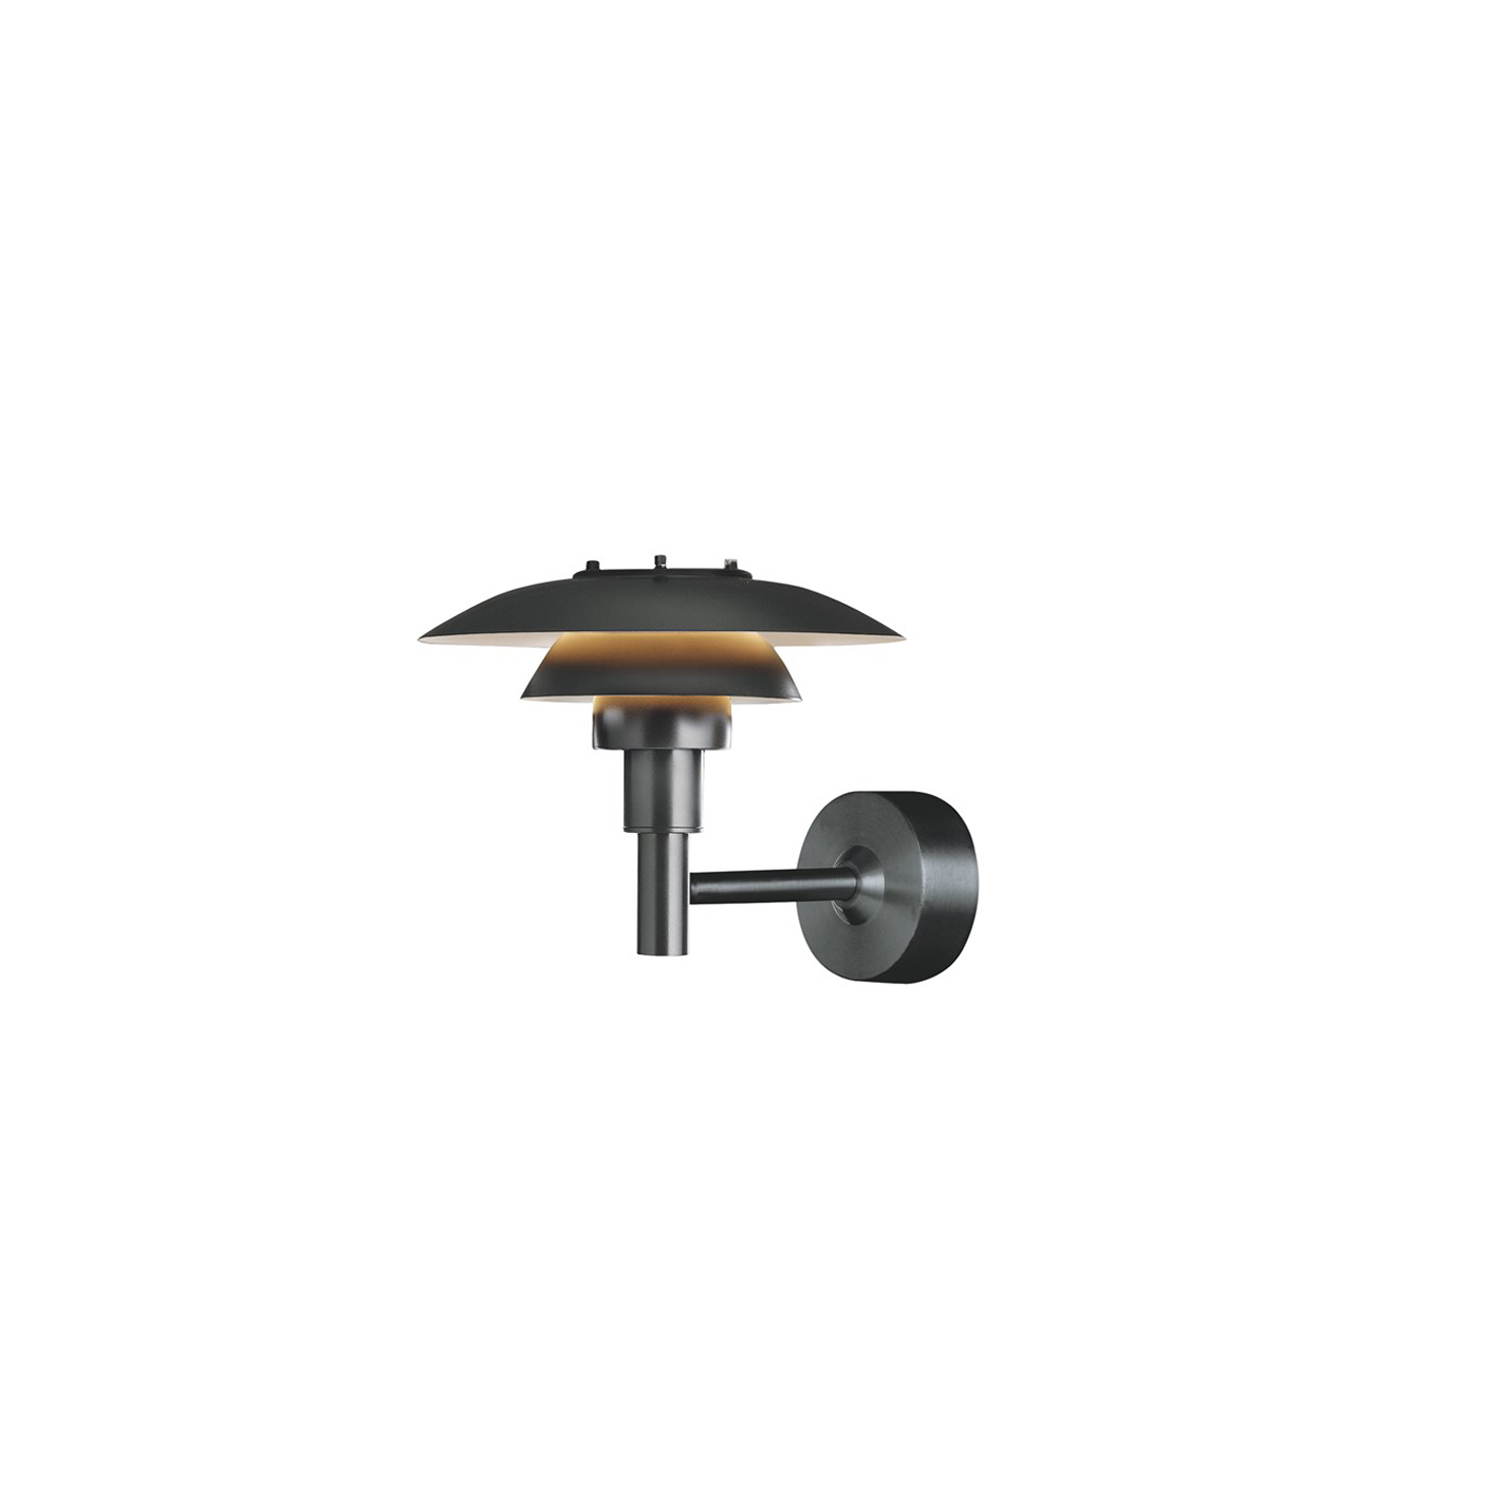 PH 3-2½ Outdoor Wall Lamp - The fixture is designed based on the principle of a reflective three-shade system, which directs the light downwards. The shades have a matt white painted interior surface, diffusing the light in a comfortable way.    | Matter of Stuff